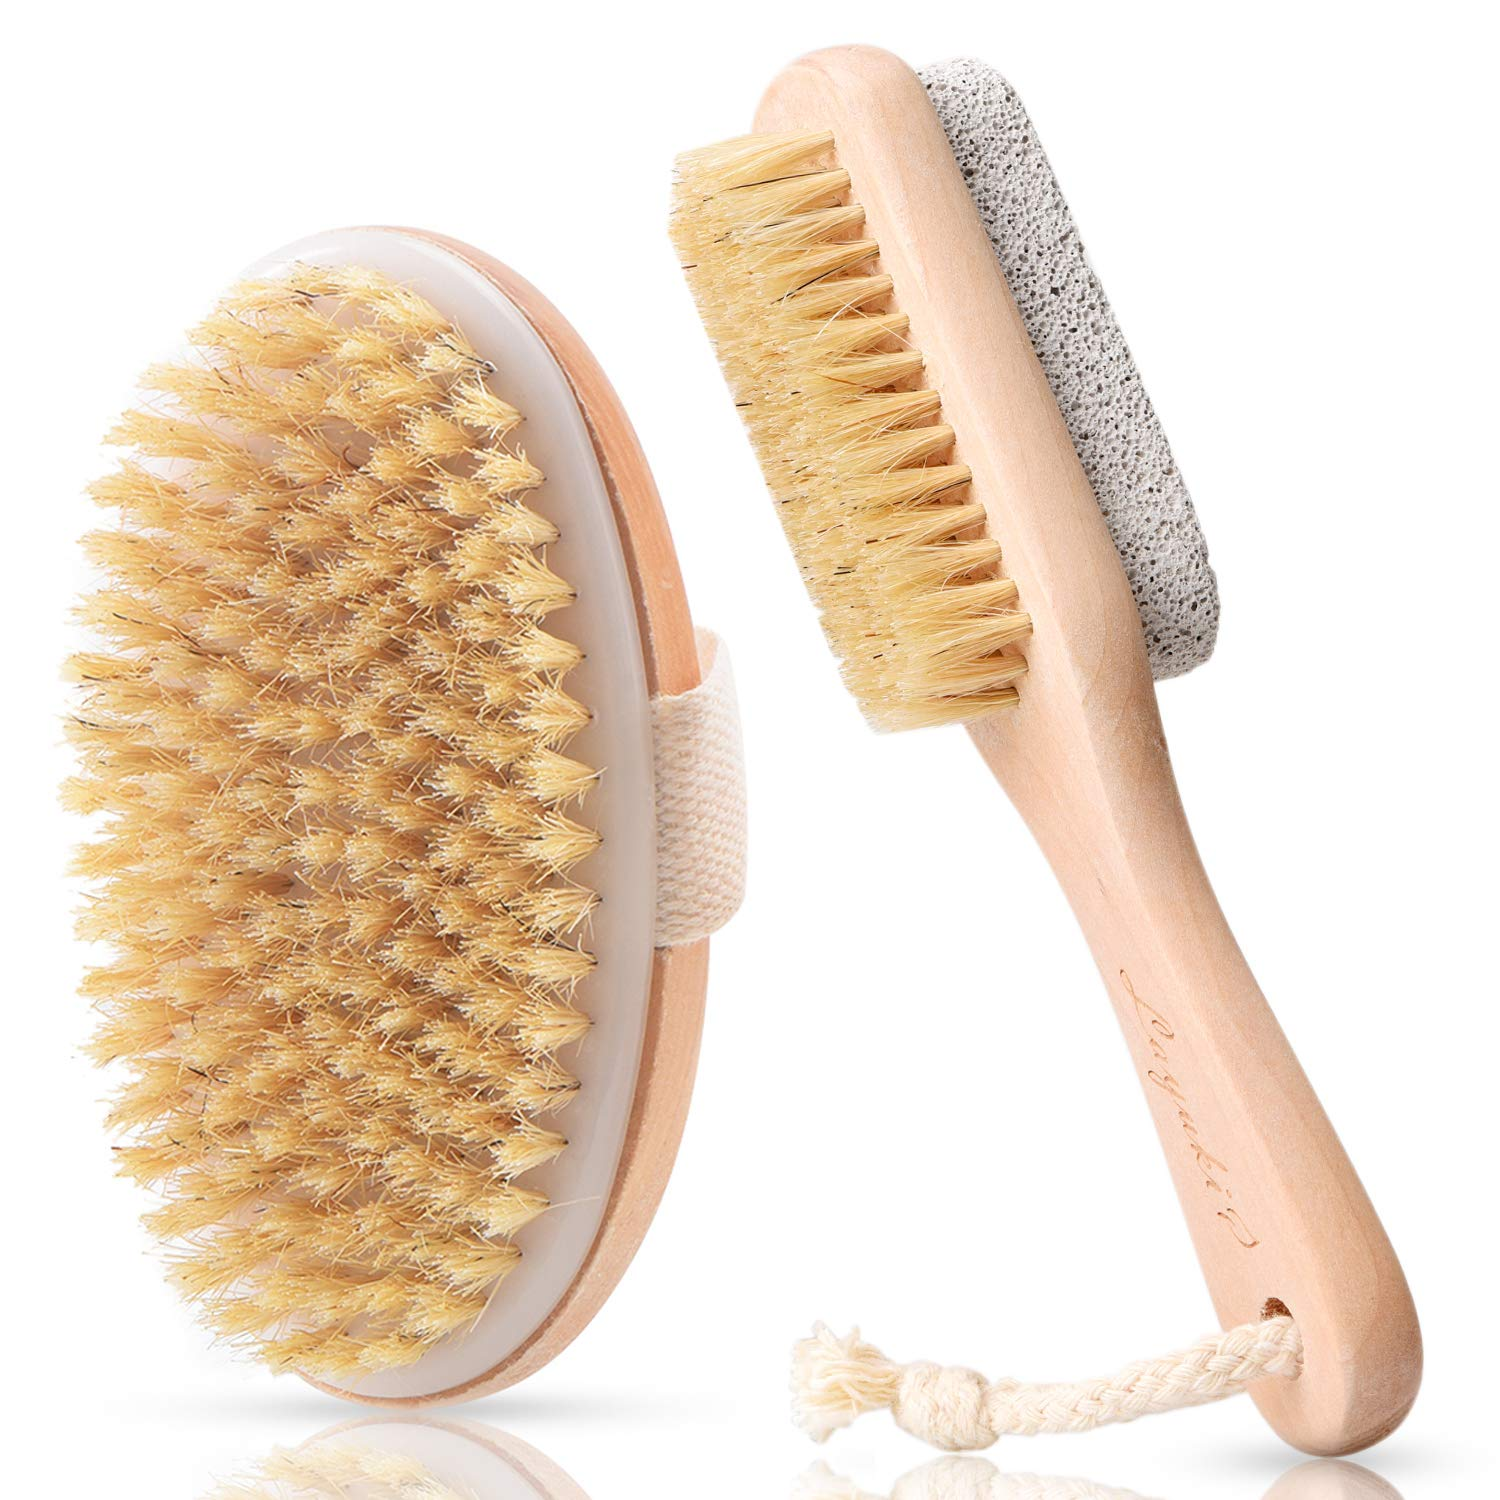 LAYUKI Body Brush for Dry or Wet 2-sided Free quality assurance Shipping Cheap Bargain Gift Foot Brushing File and